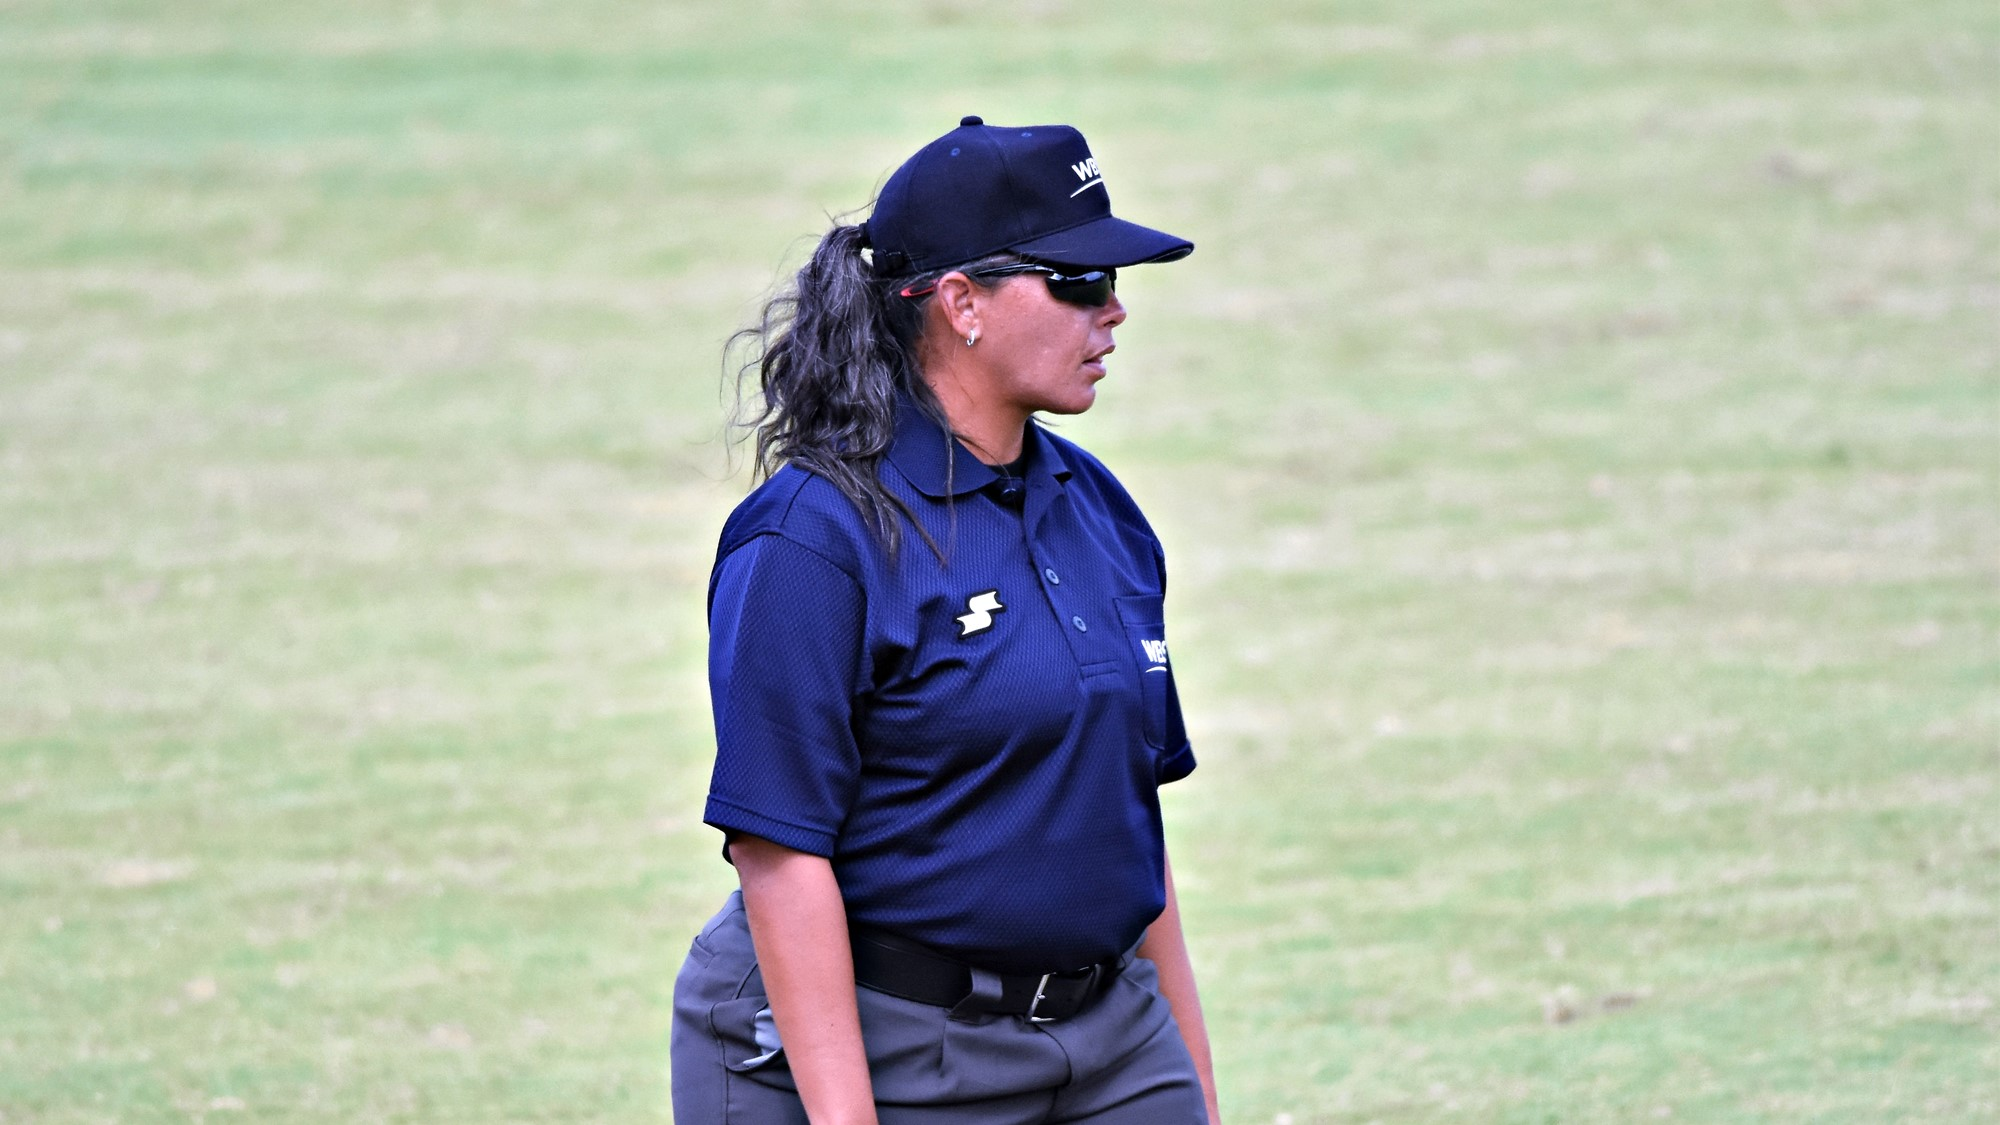 Saiya Silva in the umpiring crew for the bronze medal game